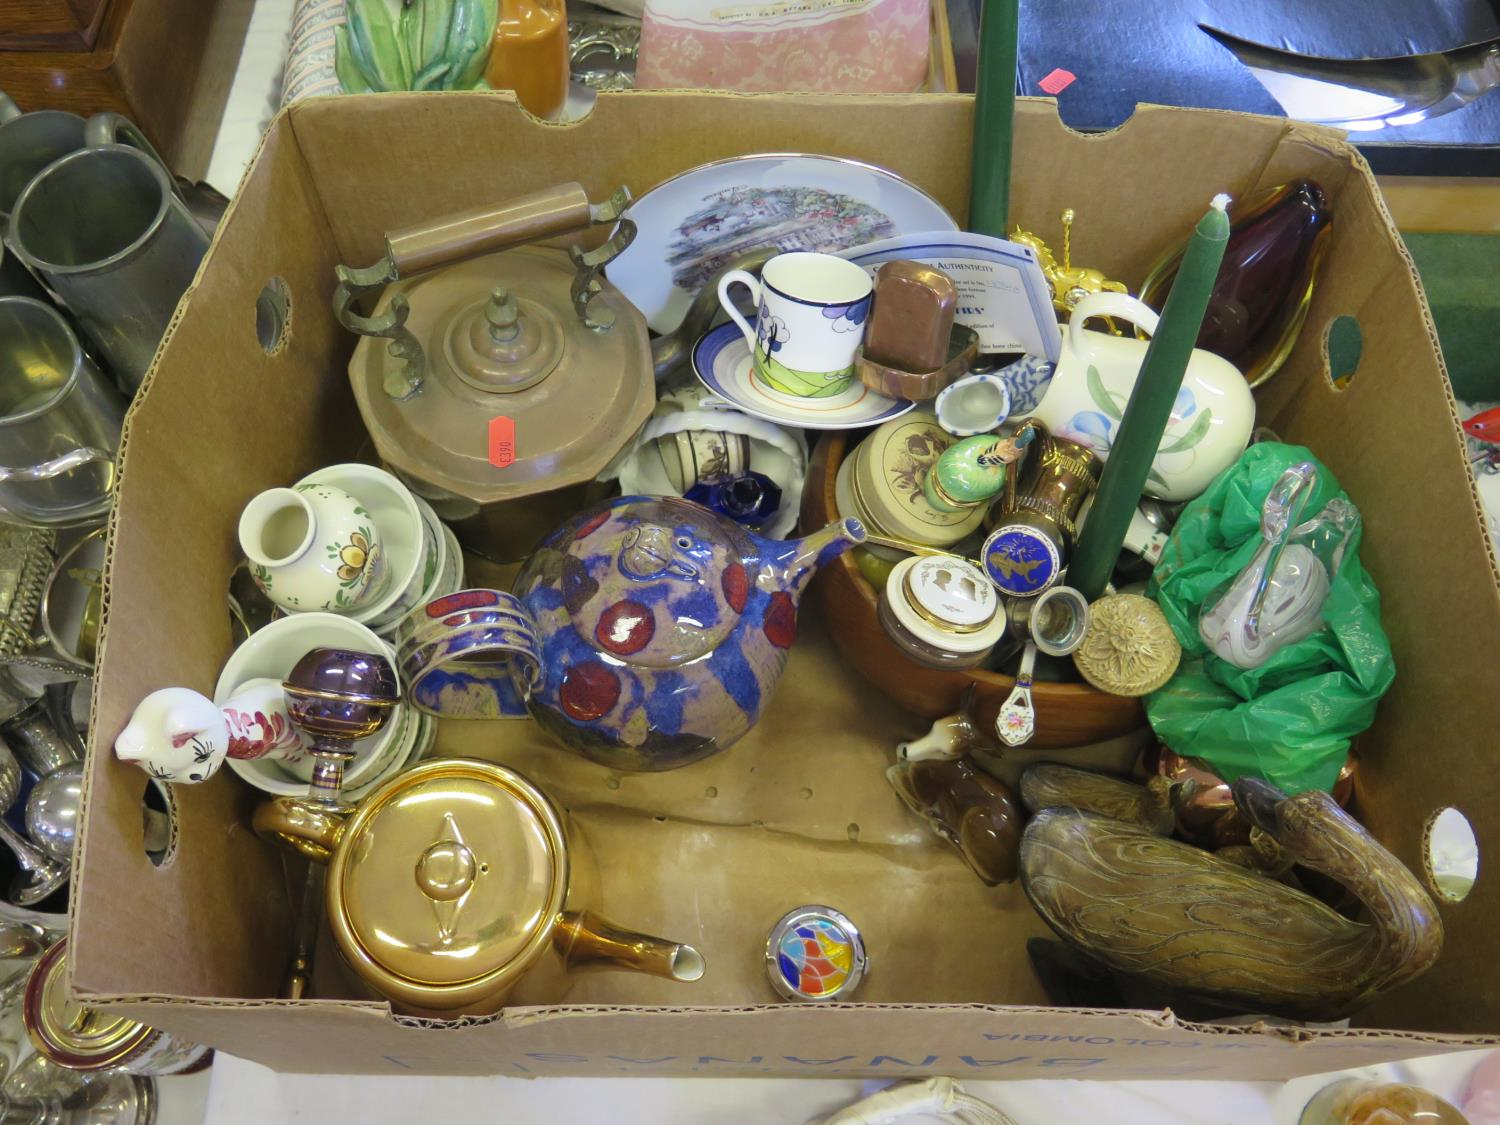 Lot 601 - A Box of Oddments including ceramics and glass